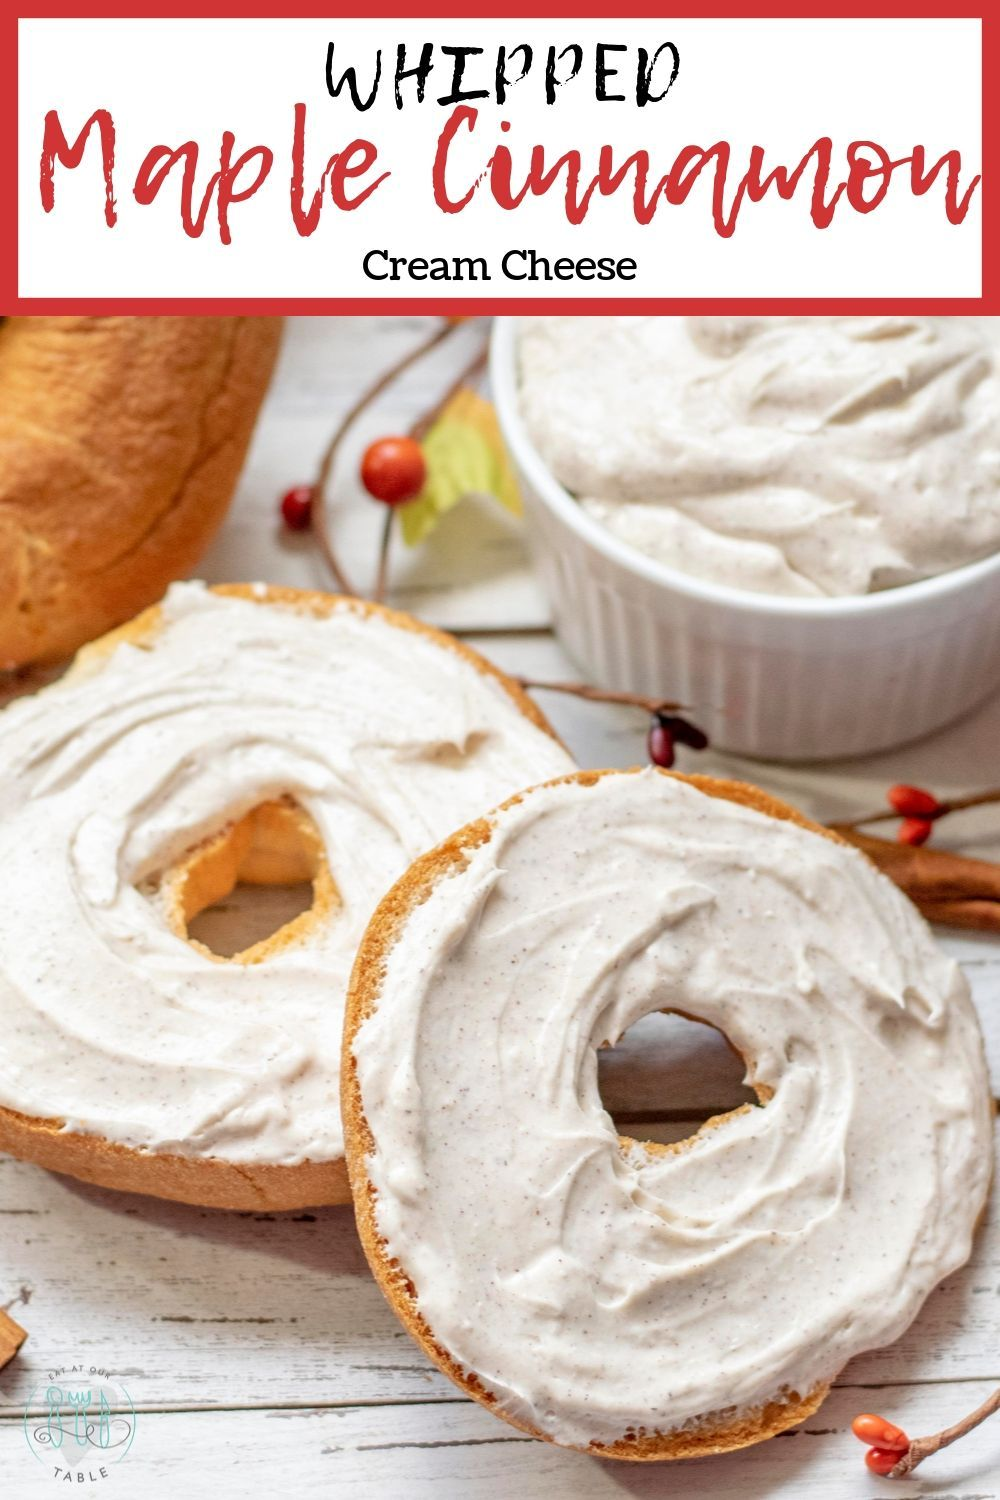 Whipped Maple Cinnamon Cream Cheese is perfect for